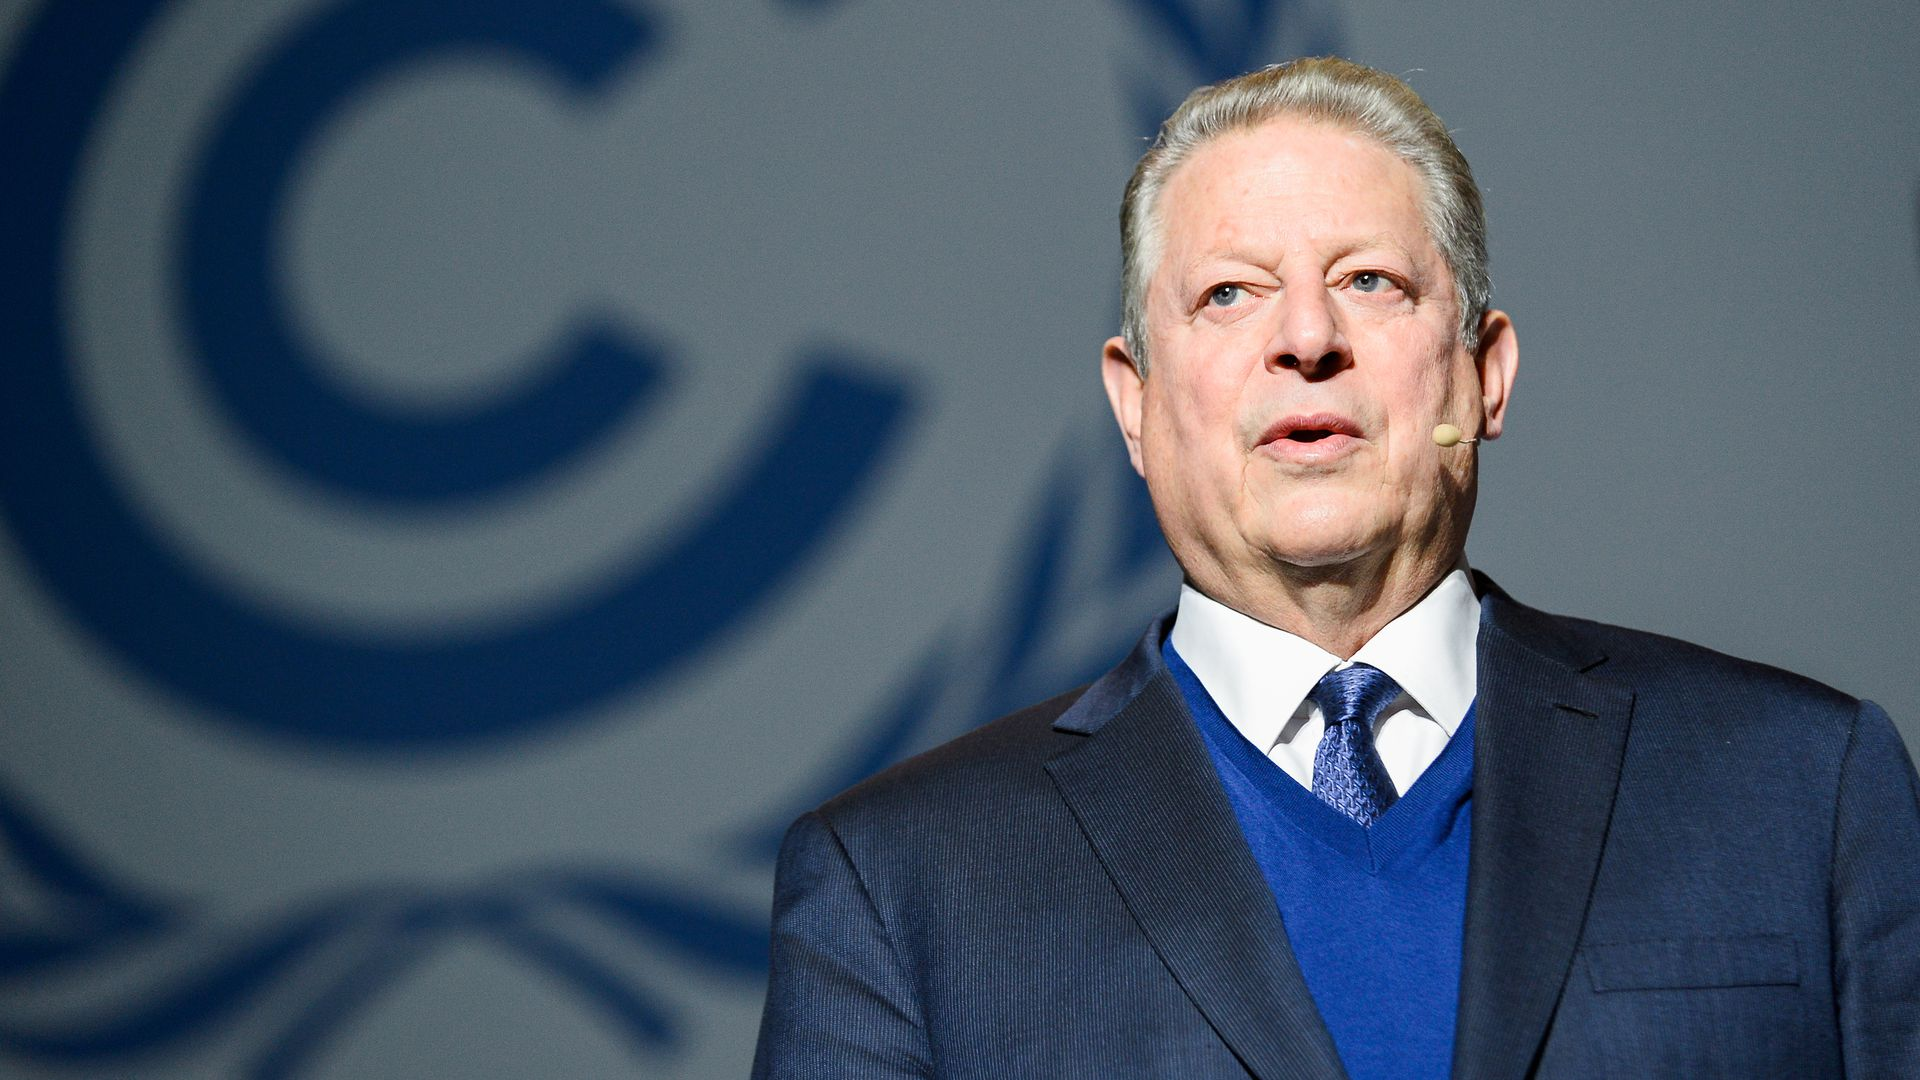 Al Gore, Former U.S. Vice President and Chairman of The Climate Reality Project seen speaking during the Climate Crisis and its Solutions presentation at the COP24 UN Climate Change Conference 2018.